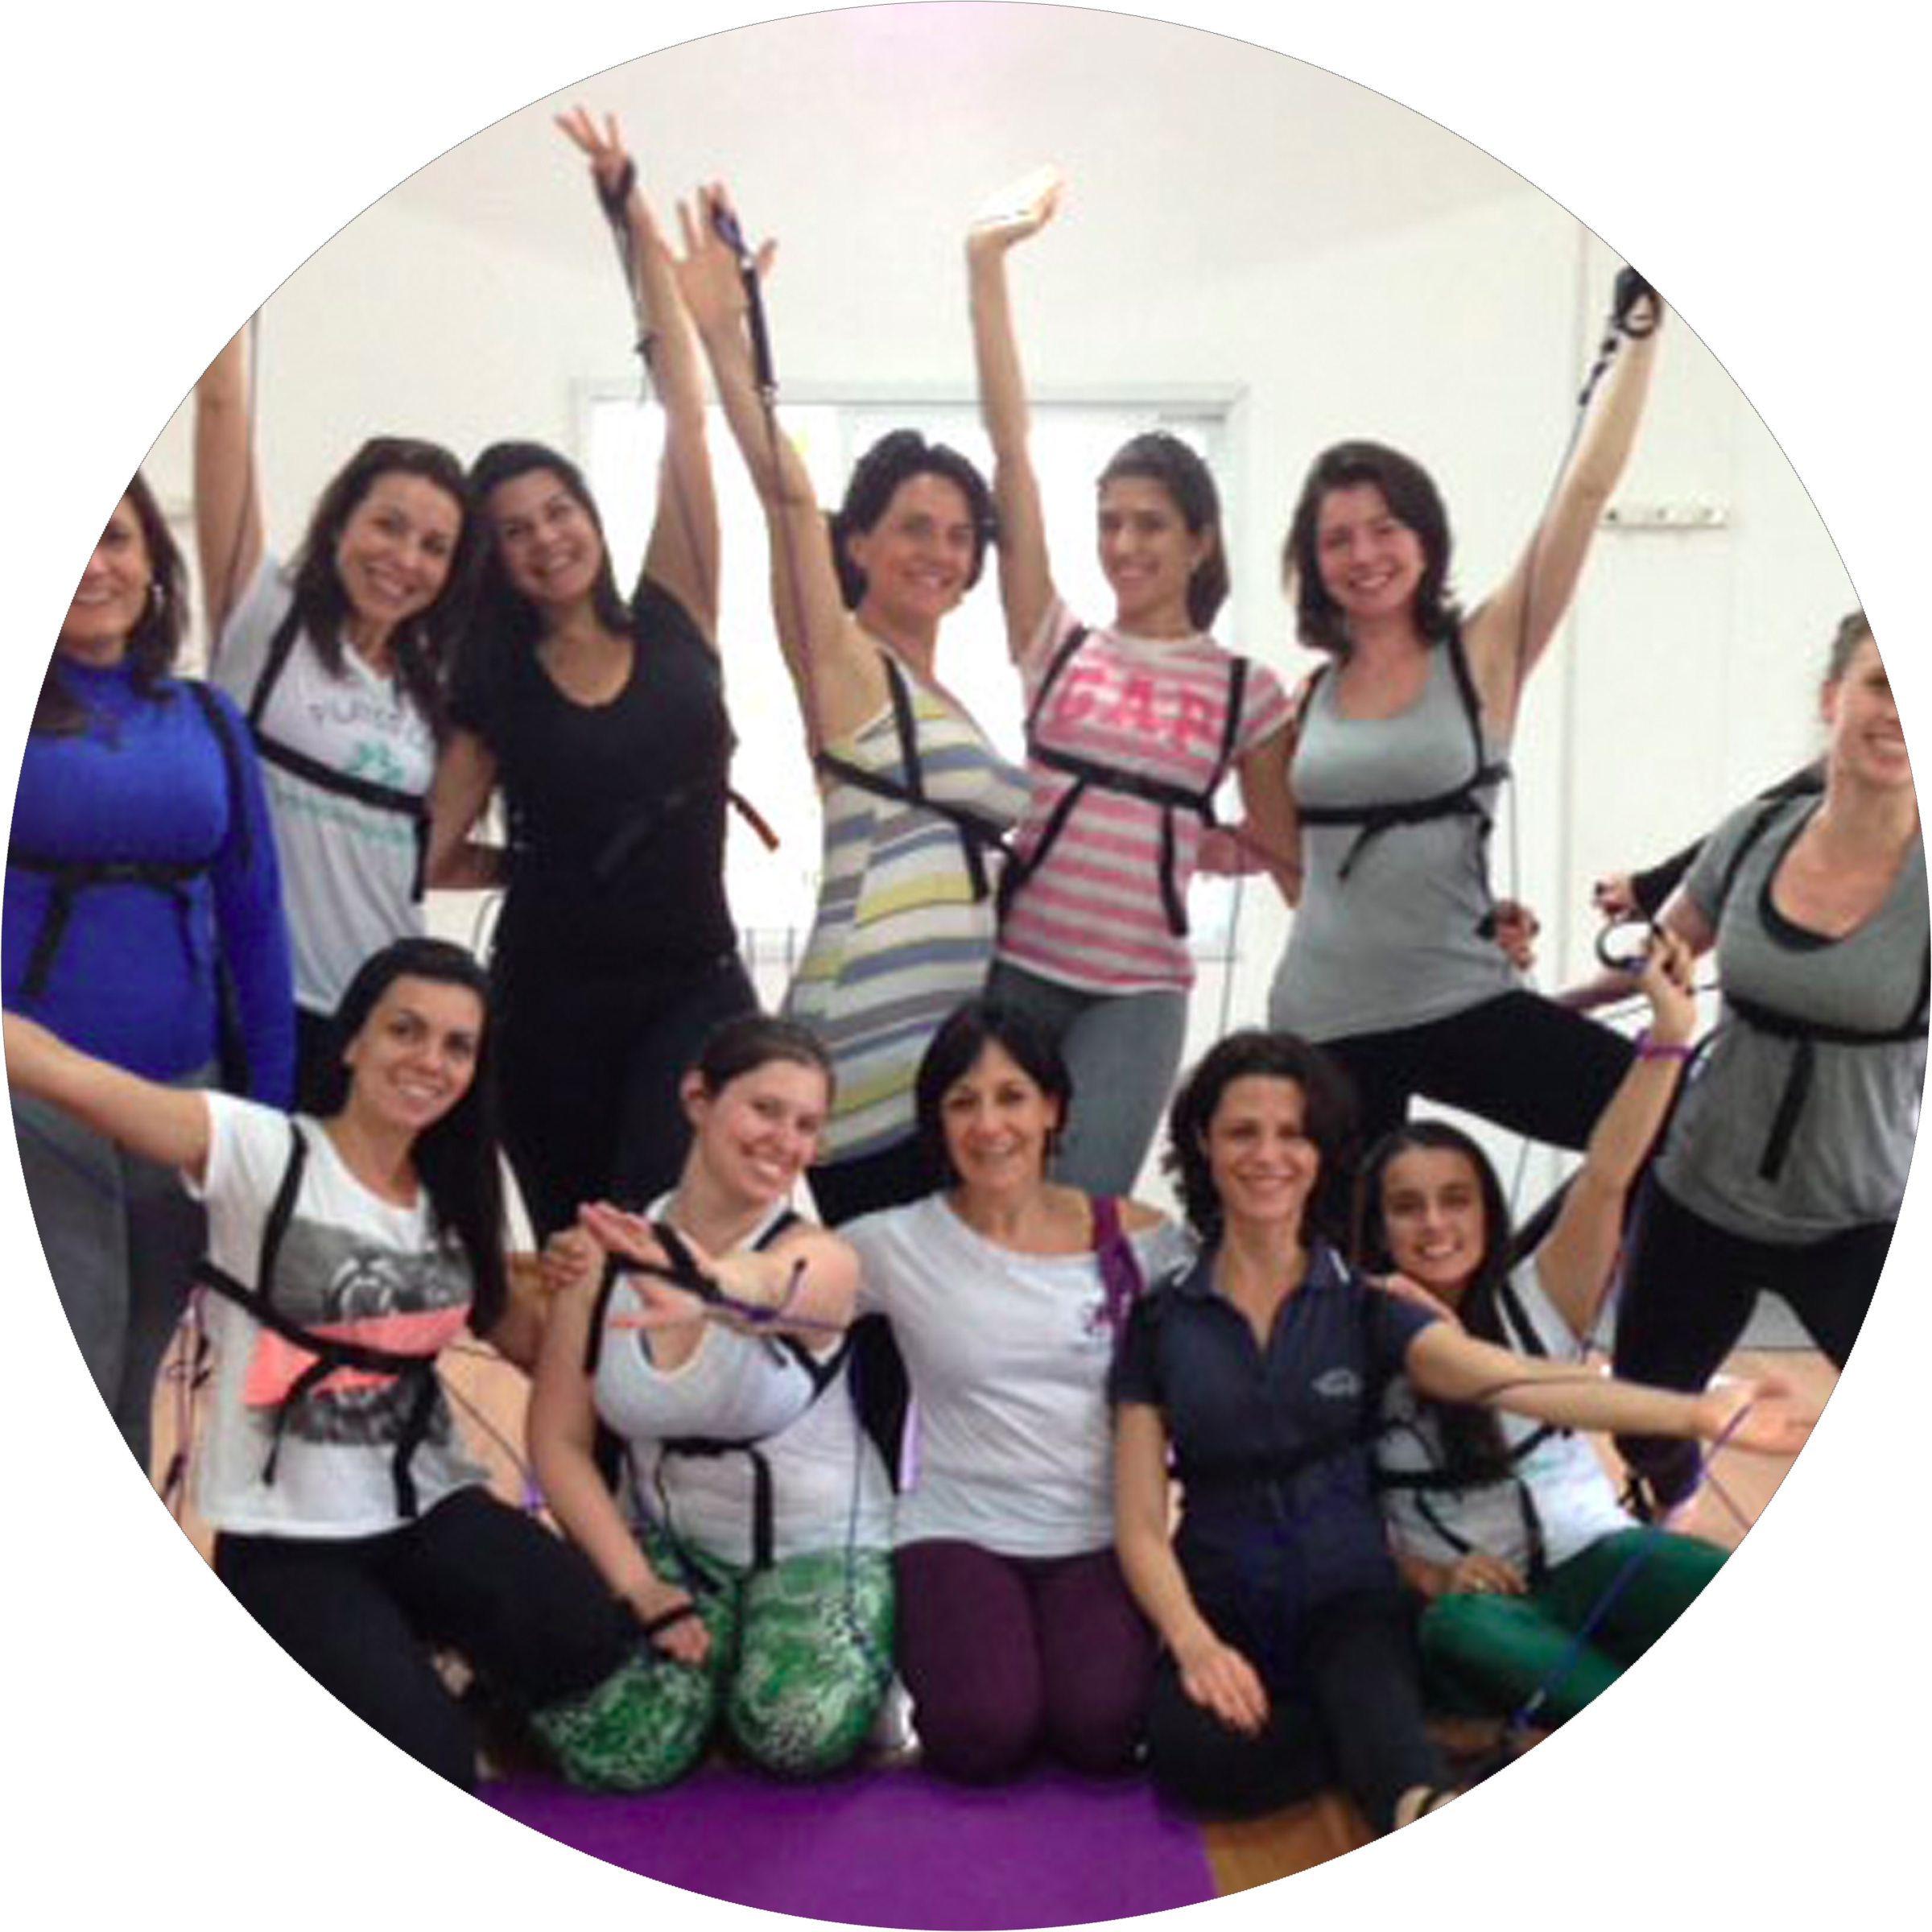 Tye4® Standing & Pilates Mat Class with Elaine DeMarkondes, Brazil.